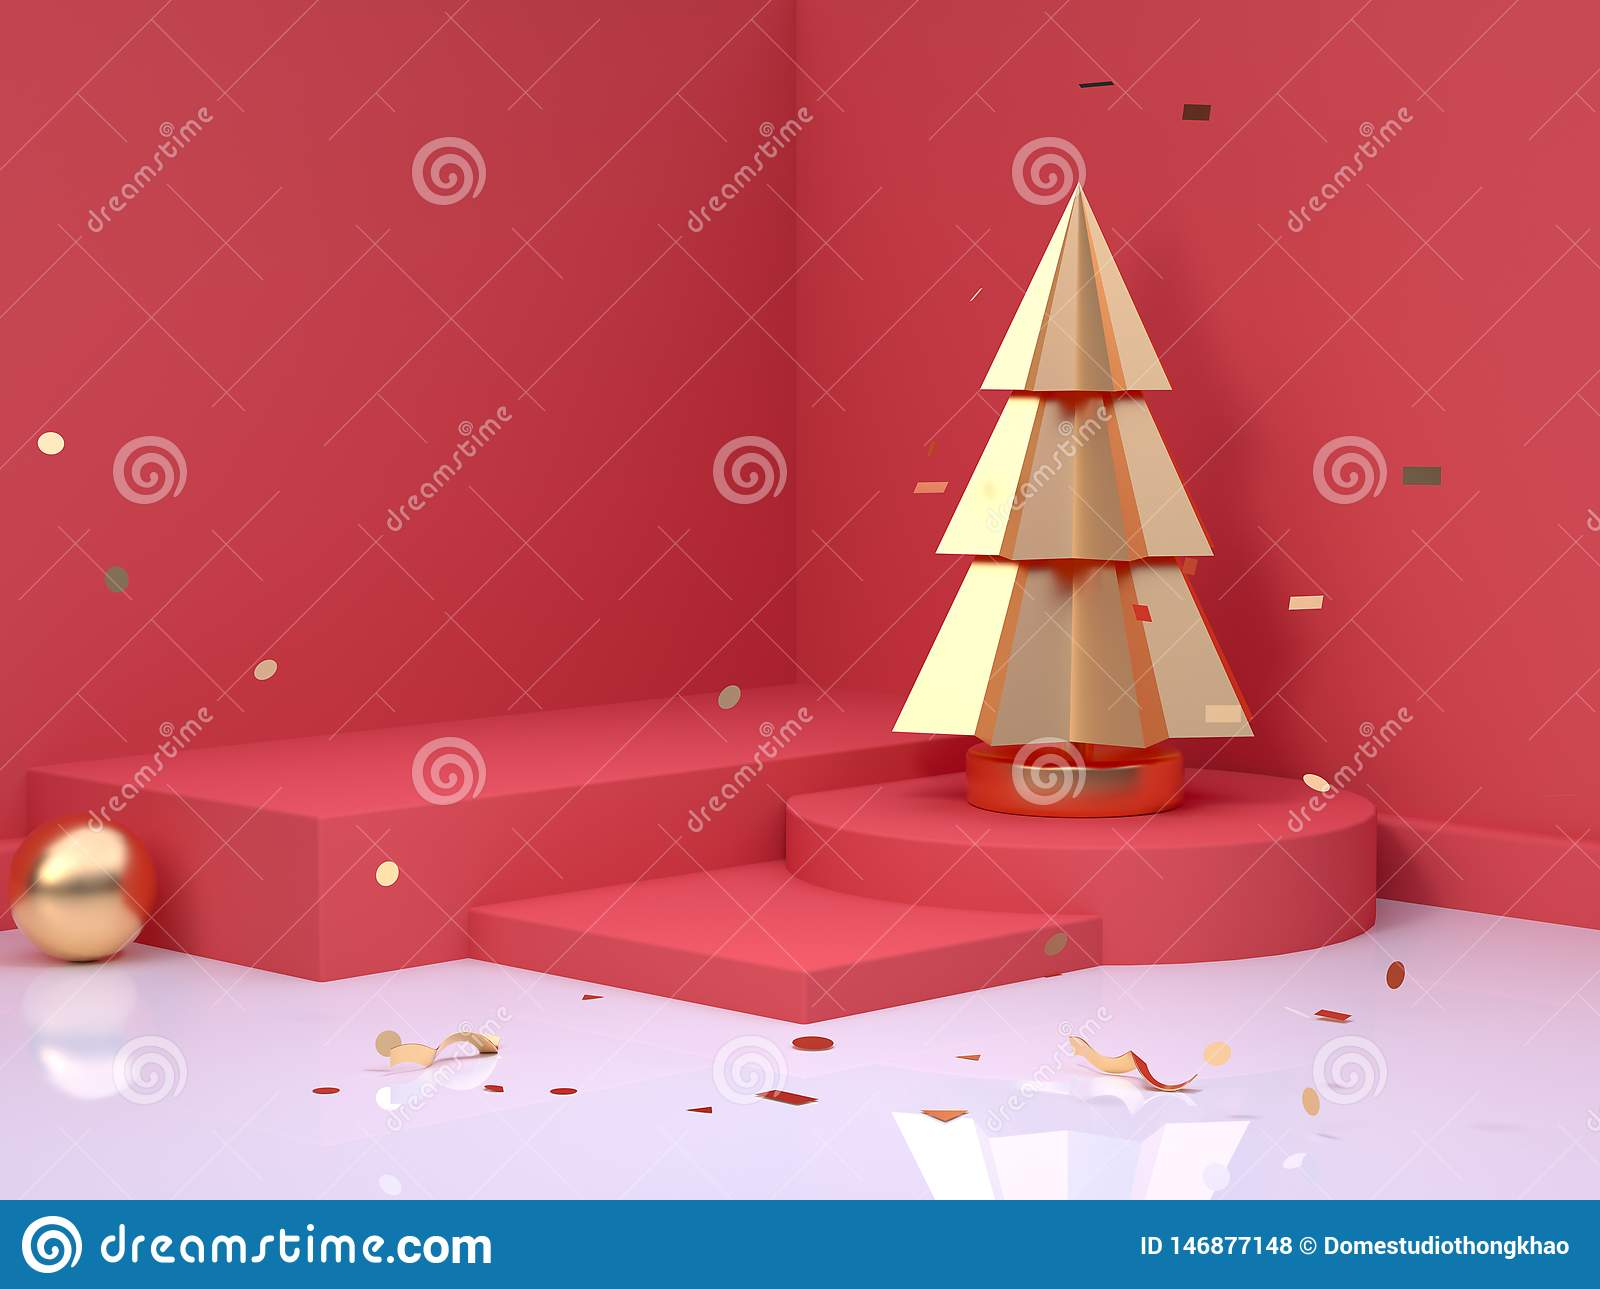 Gold Christmas Tree Christmas Holiday New Year Concept 3d Rendering Red Scene Wall Floor Corner Abstract Minimal Stock Illustration Illustration Of Wall Background 146877148